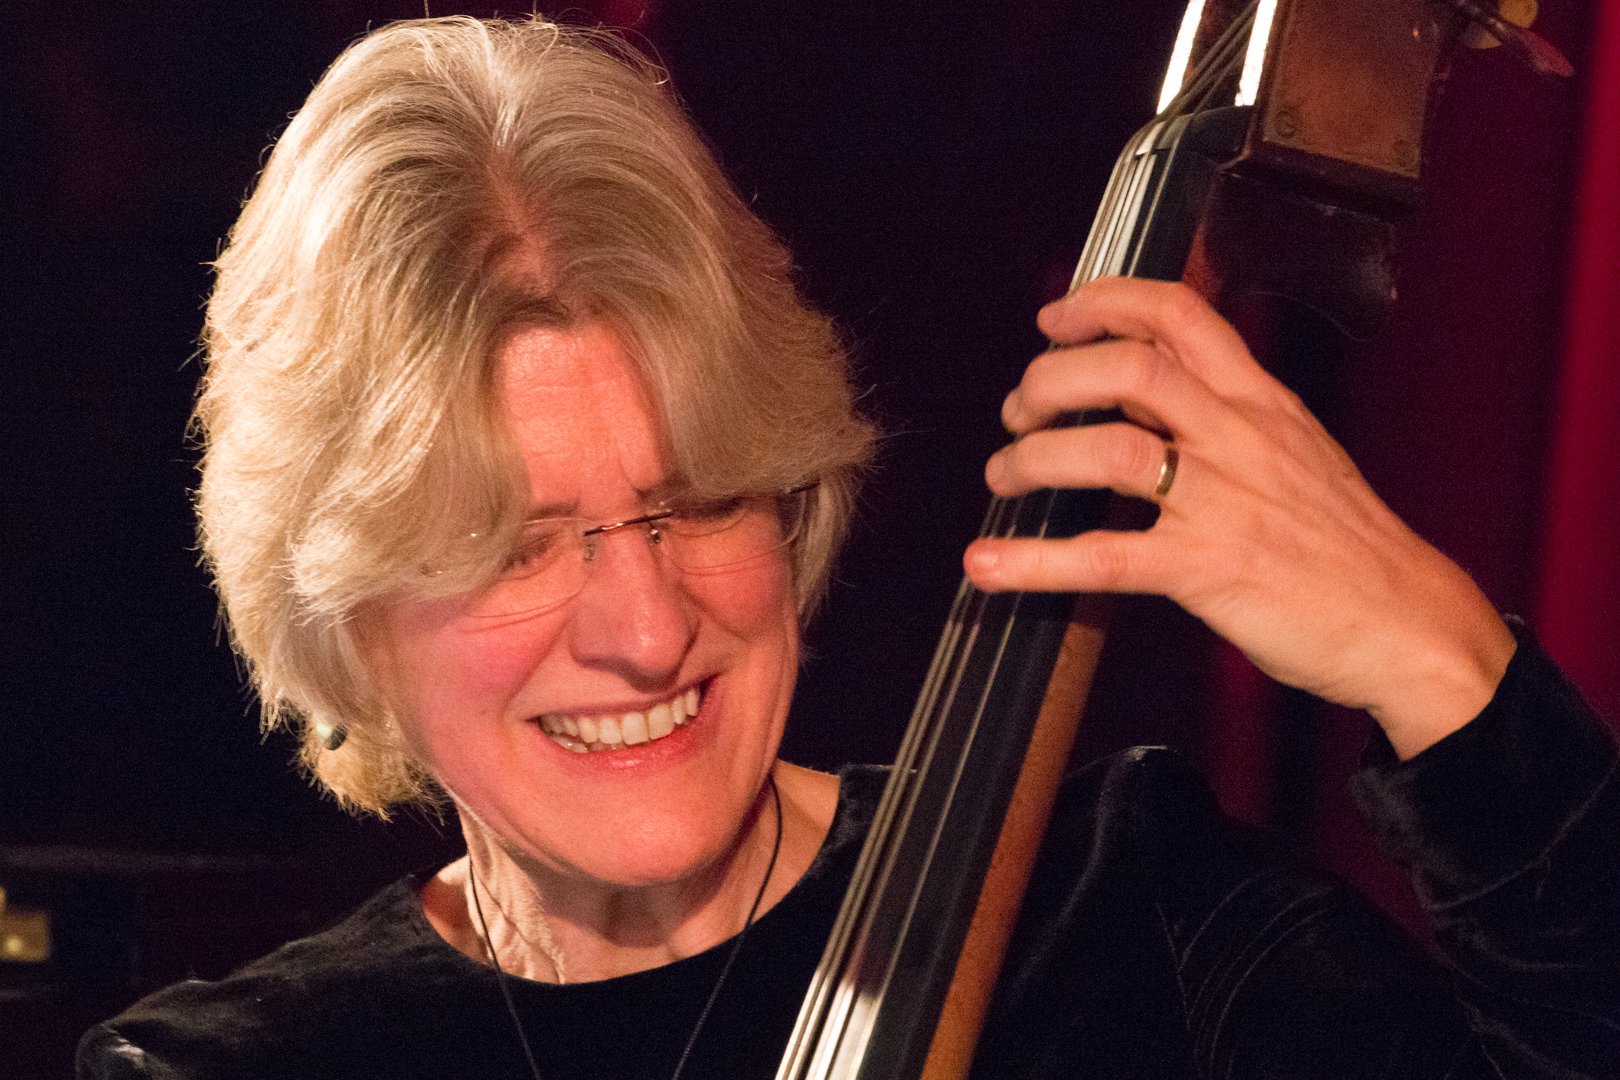 Marianne Windham performing in the Nikki Iles All Star Septet at Fleet Jazz on 19th Feb 2019